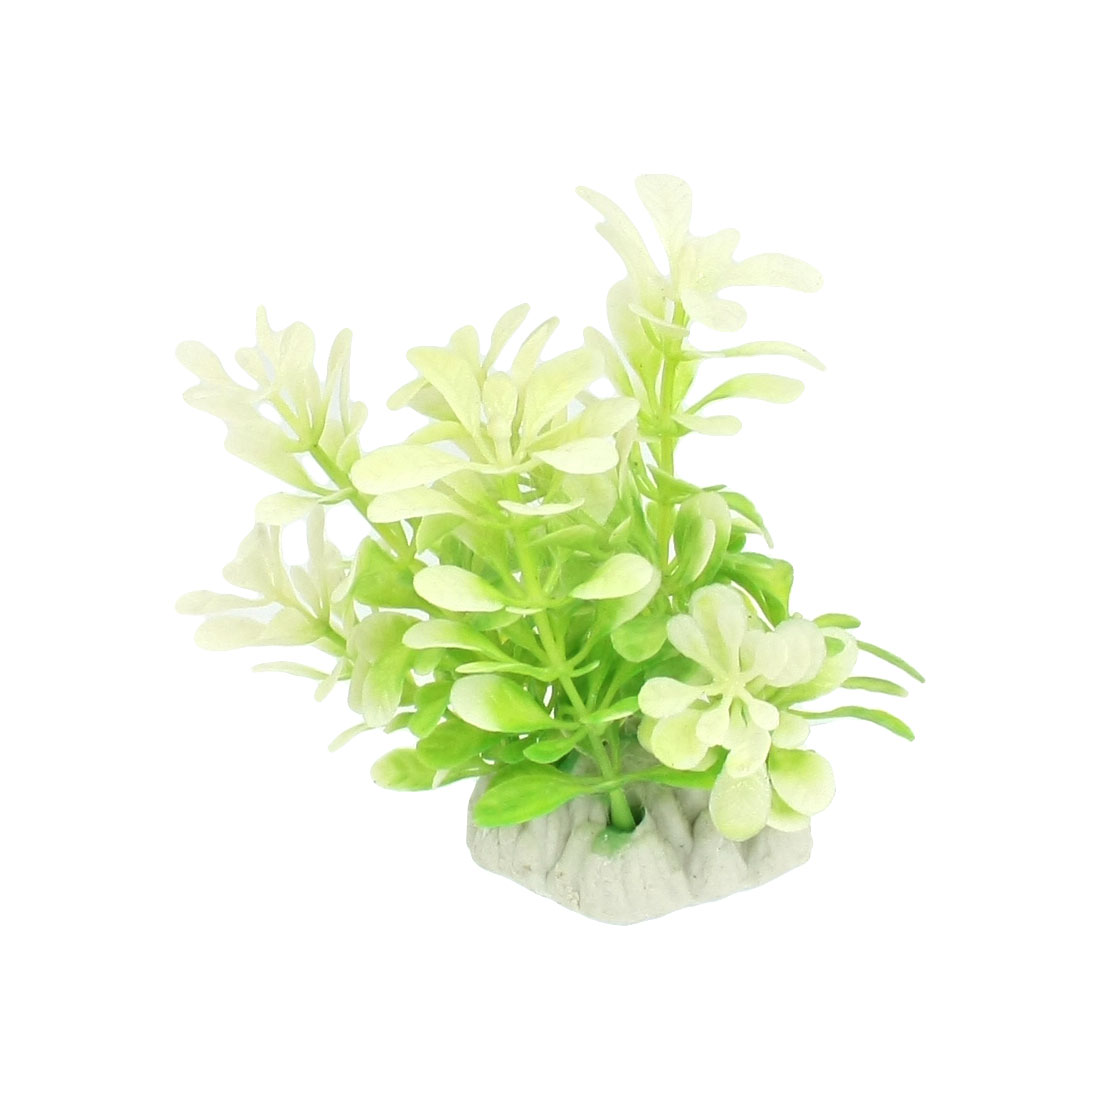 Emulational Plastic Light Green Off White Leaf Aquatic Plant for Aquarium Adorn